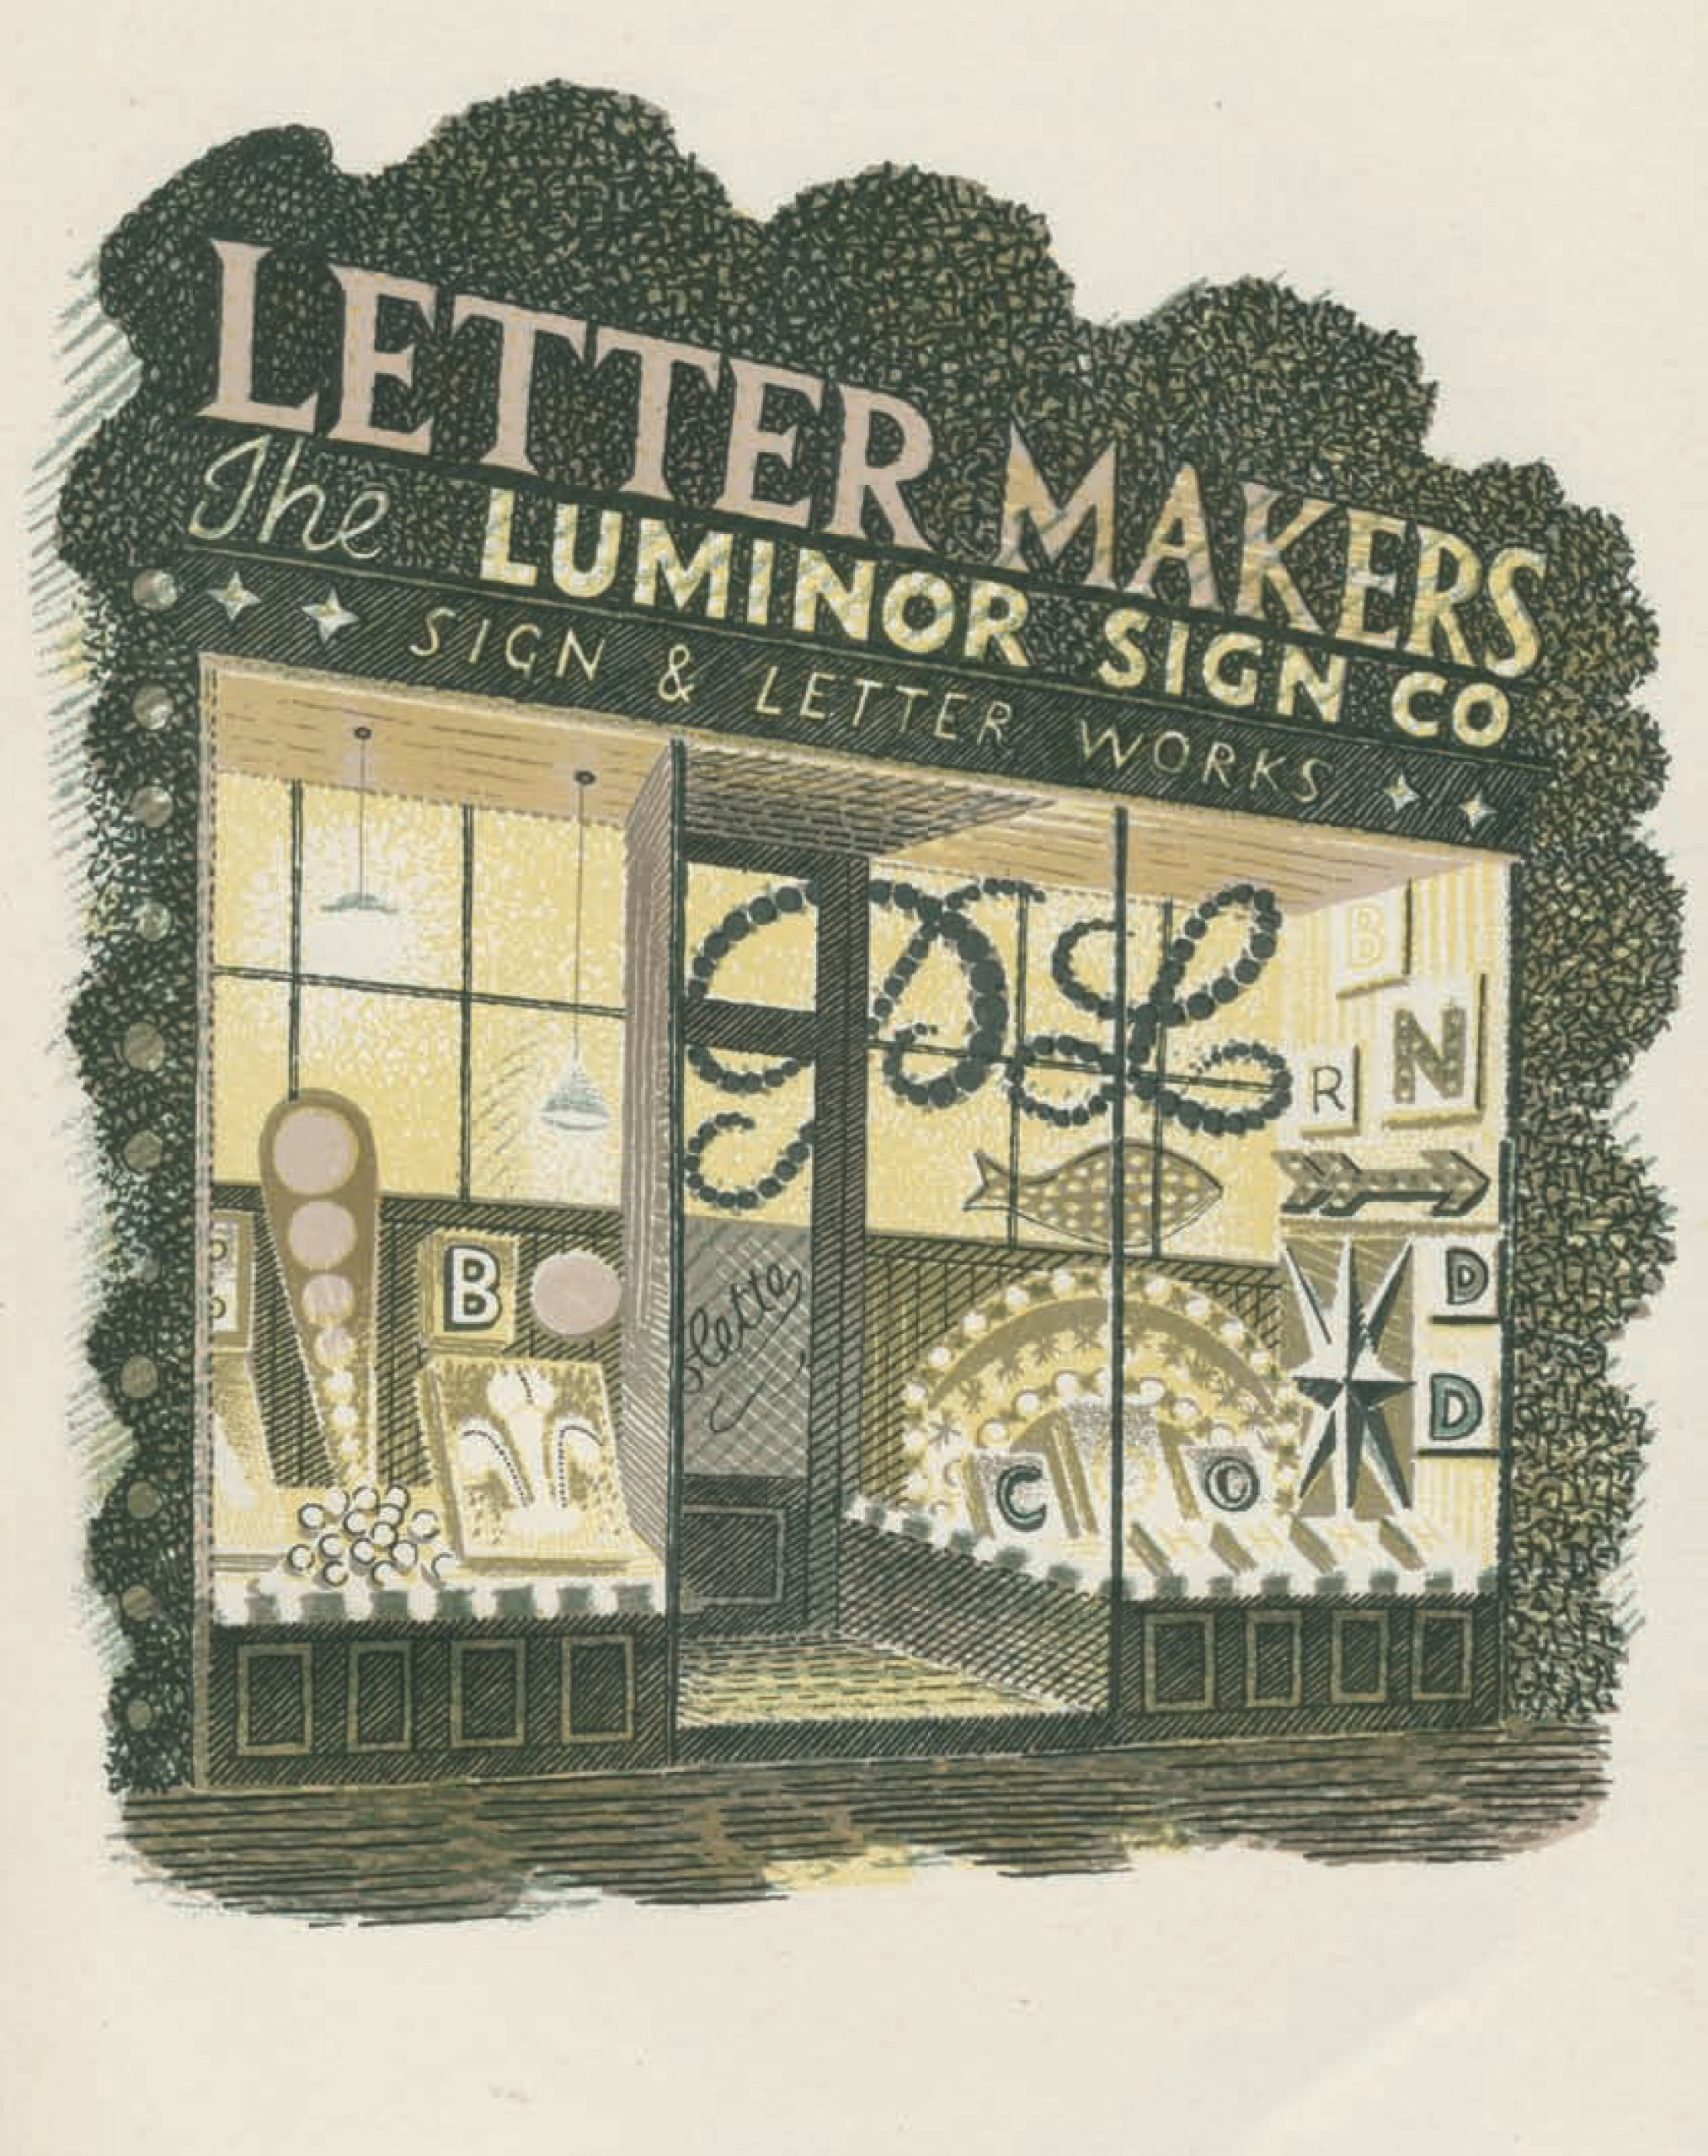 An illustration from High Street by Eric Ravilious and J.M. Richards